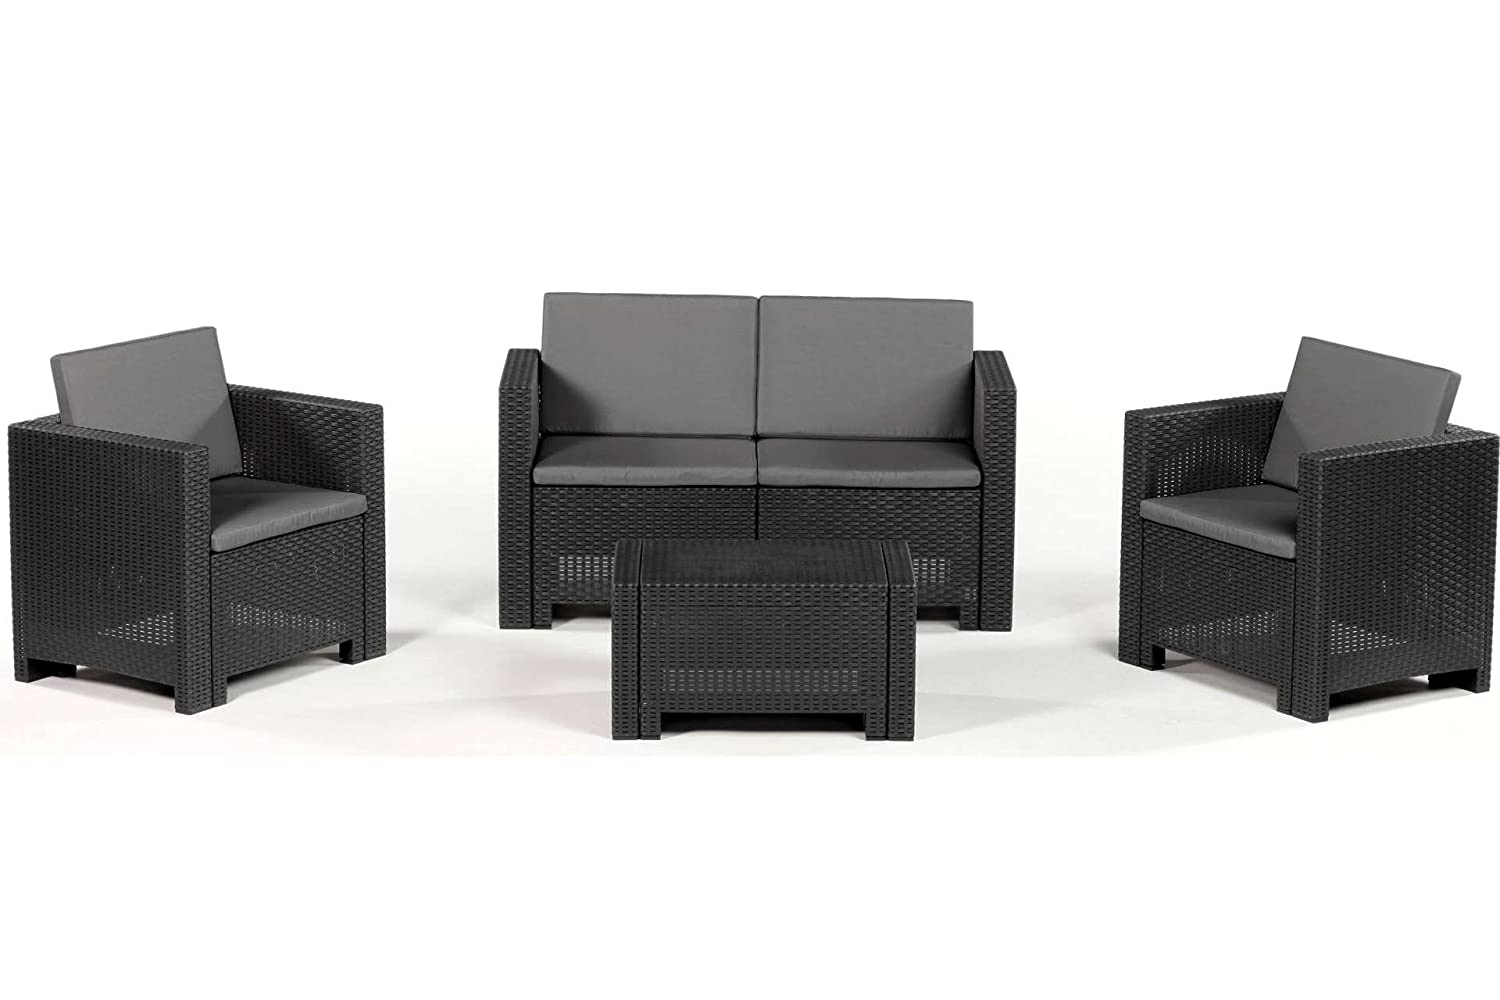 allibert sitzgruppe cannes loungegarnitur poly rattan braun g nstig kaufen. Black Bedroom Furniture Sets. Home Design Ideas